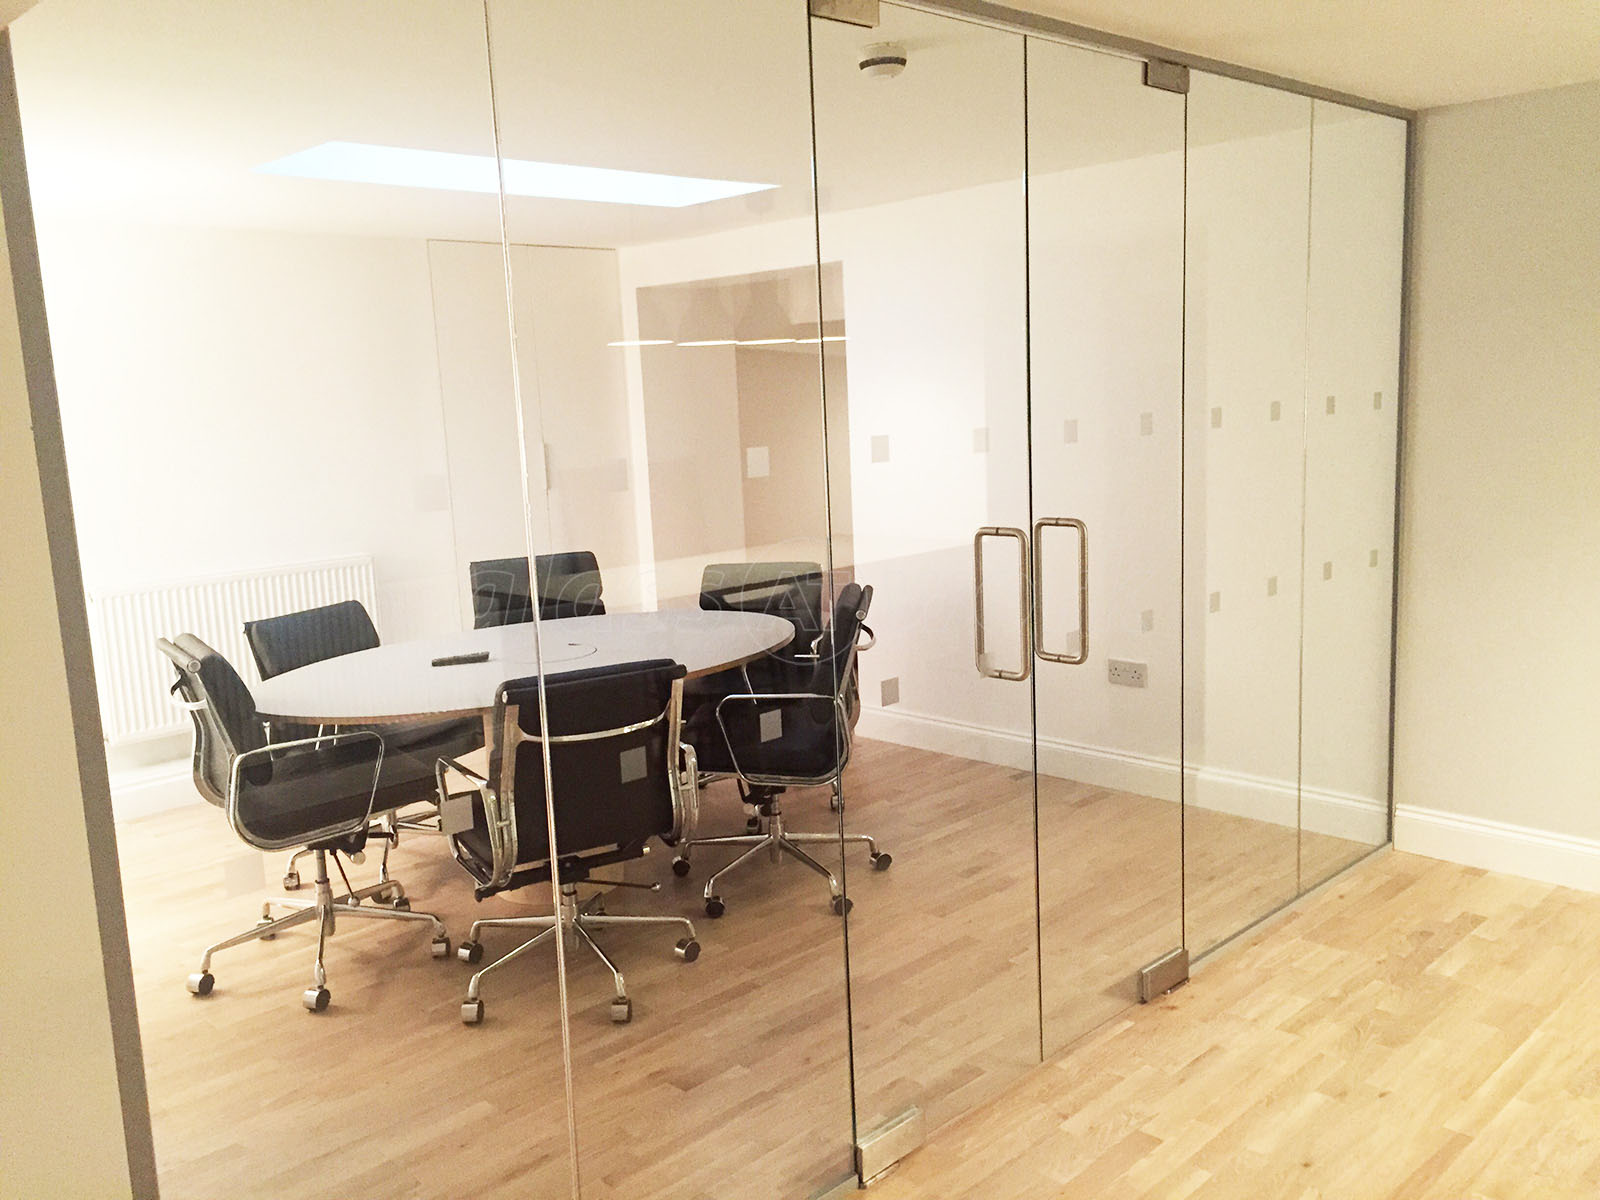 Swedbrand Ltd (London) Glass Double Doors And Partition & Glass Partitioning at Swedbrand Ltd (London): Glass Double Doors And ...